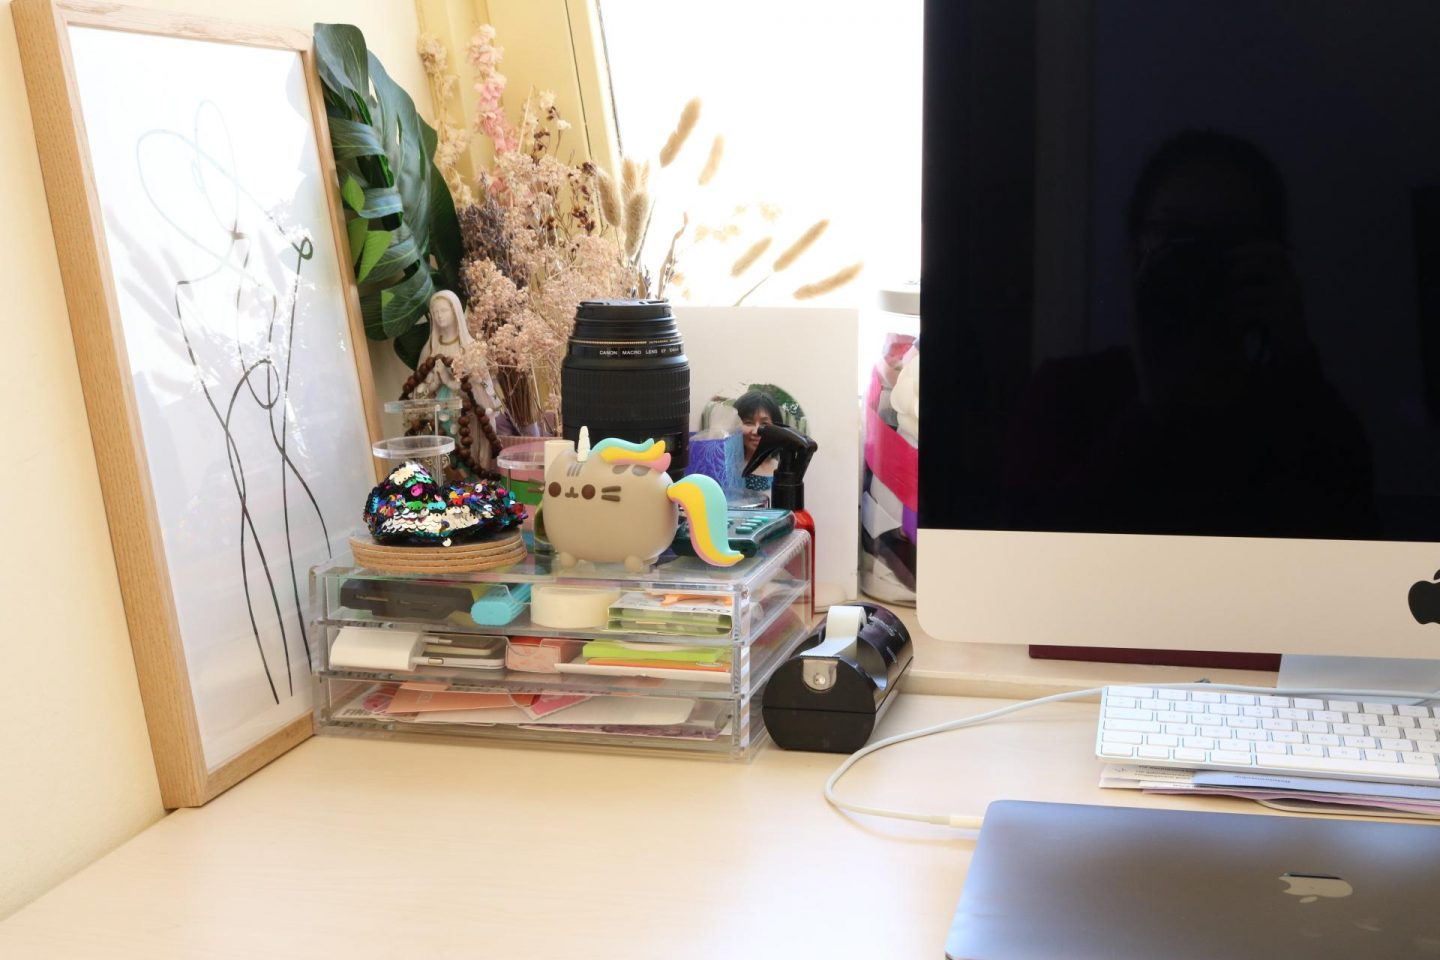 What is on mt desk? Pusheen!